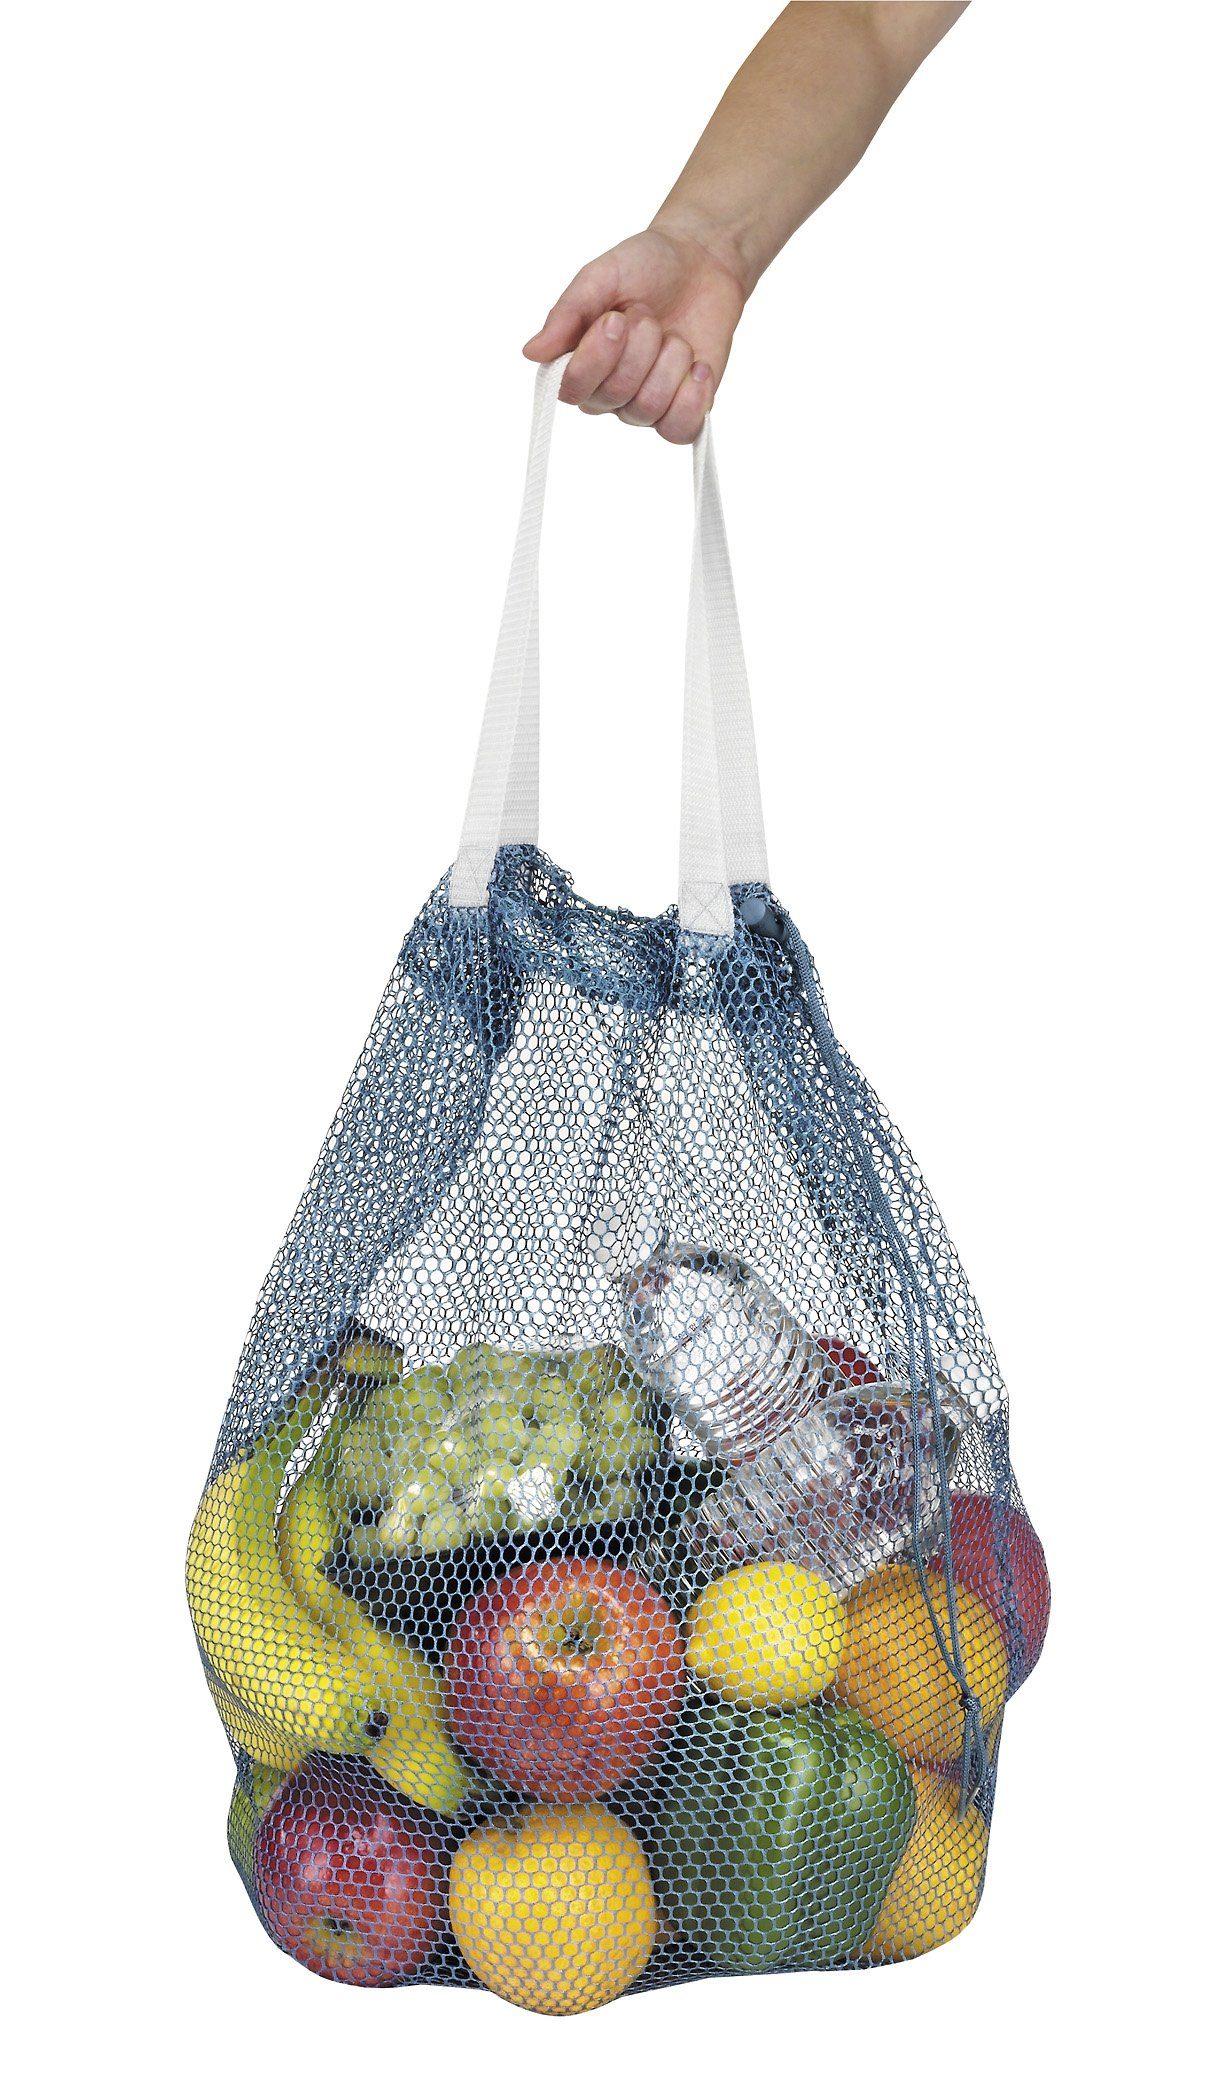 Whitmor Mesh Tote Bag with Handles by Whitmor (Image #4)